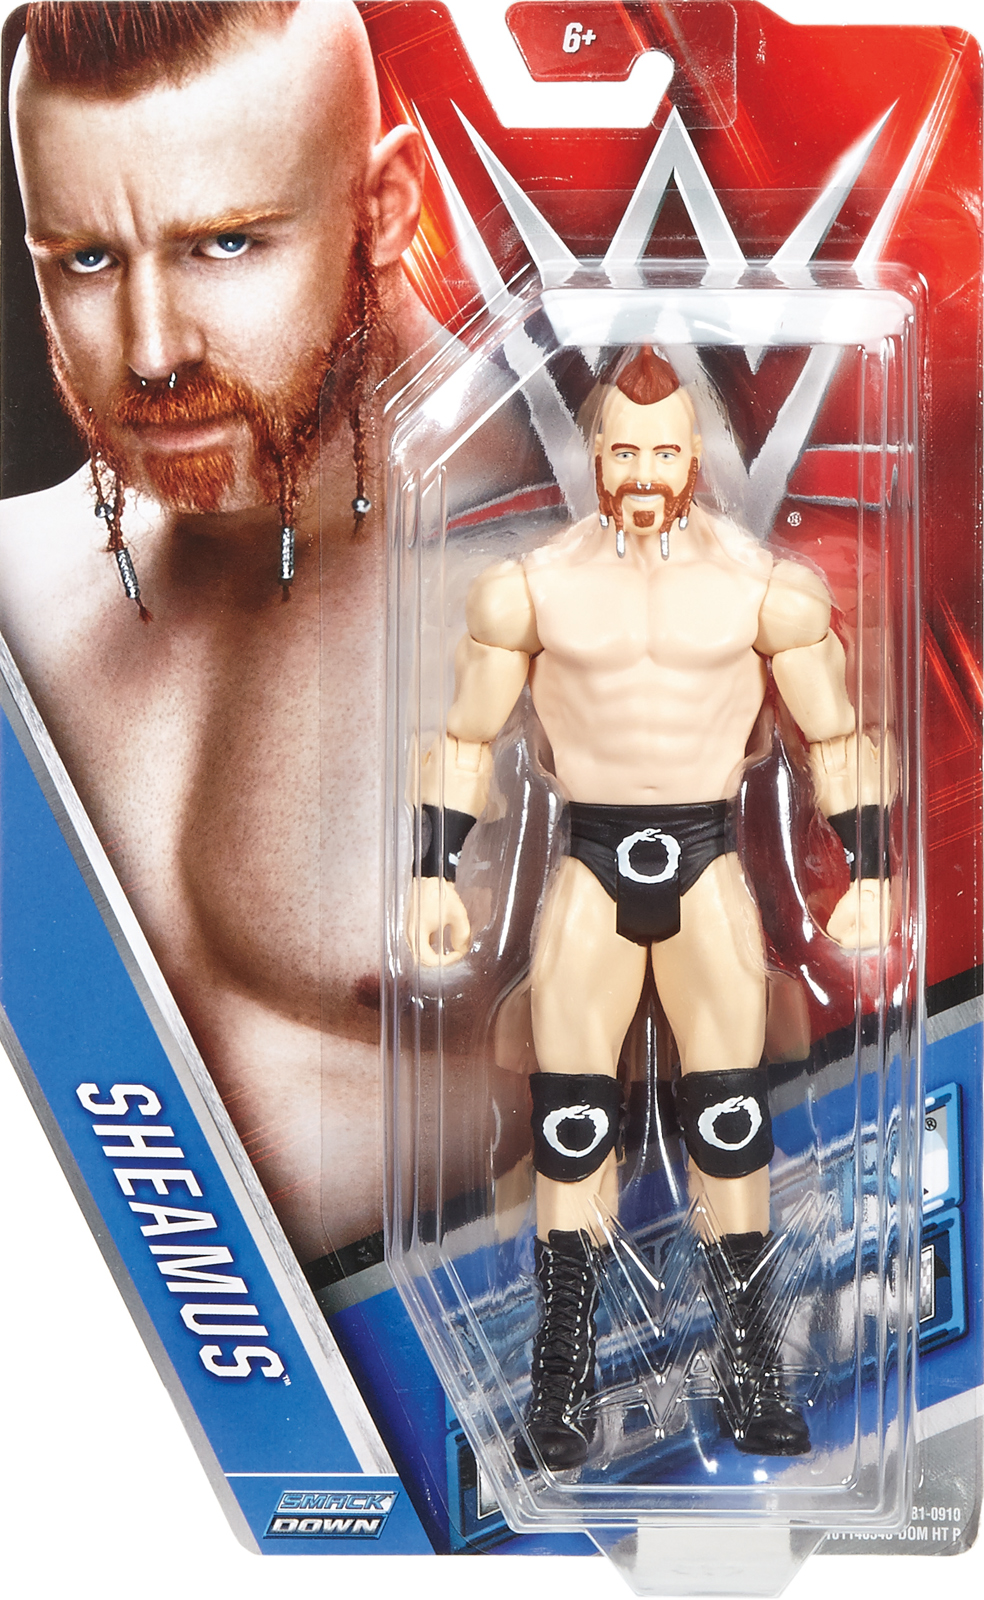 Sheamus - WWE Series 65 Toy Wrestling Action Figure 004V003649060000